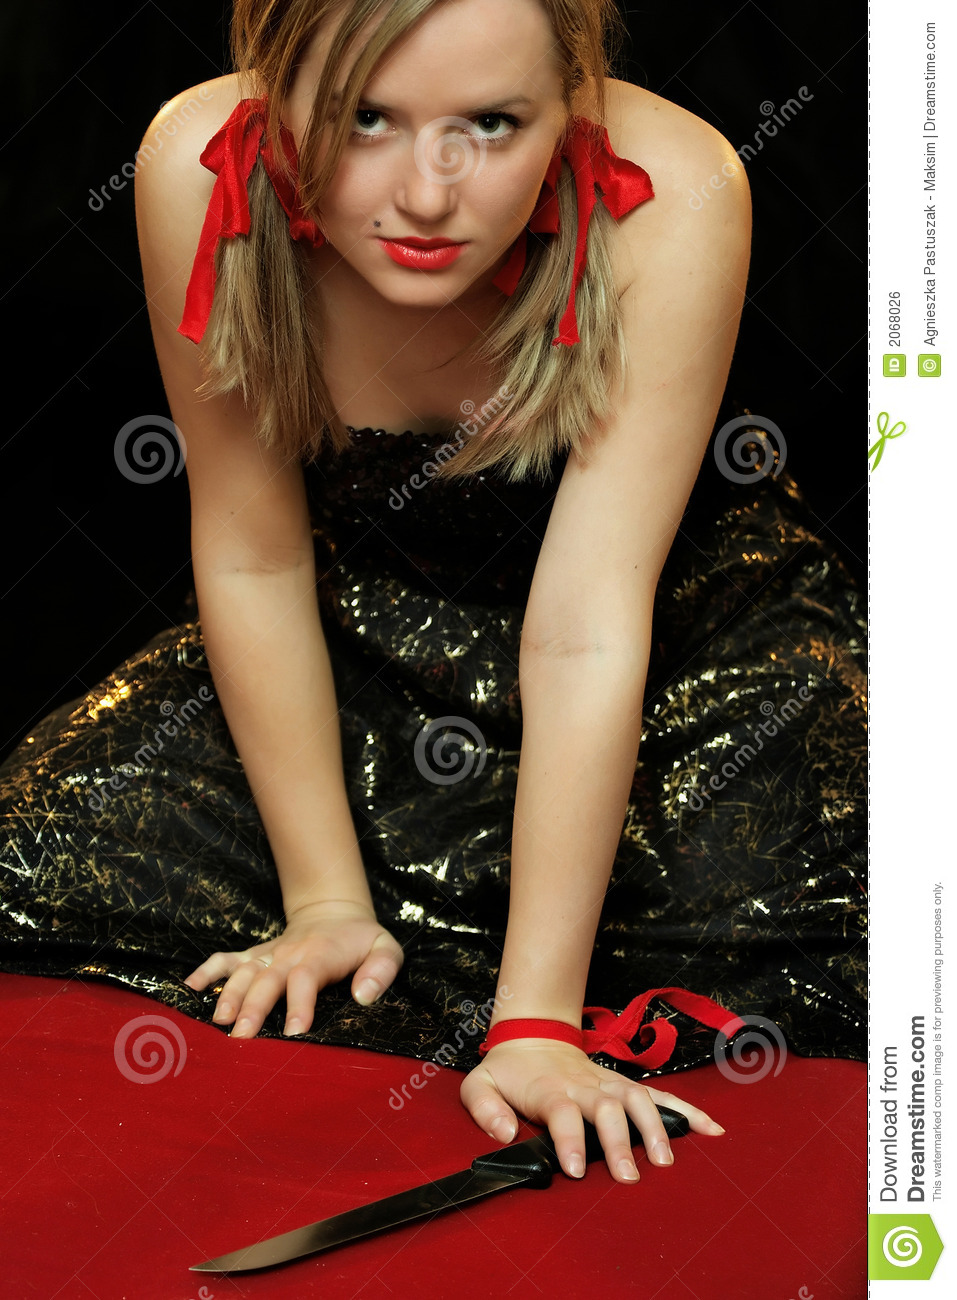 Woman With Knife Royalty Free Stock Image  Image 2068026